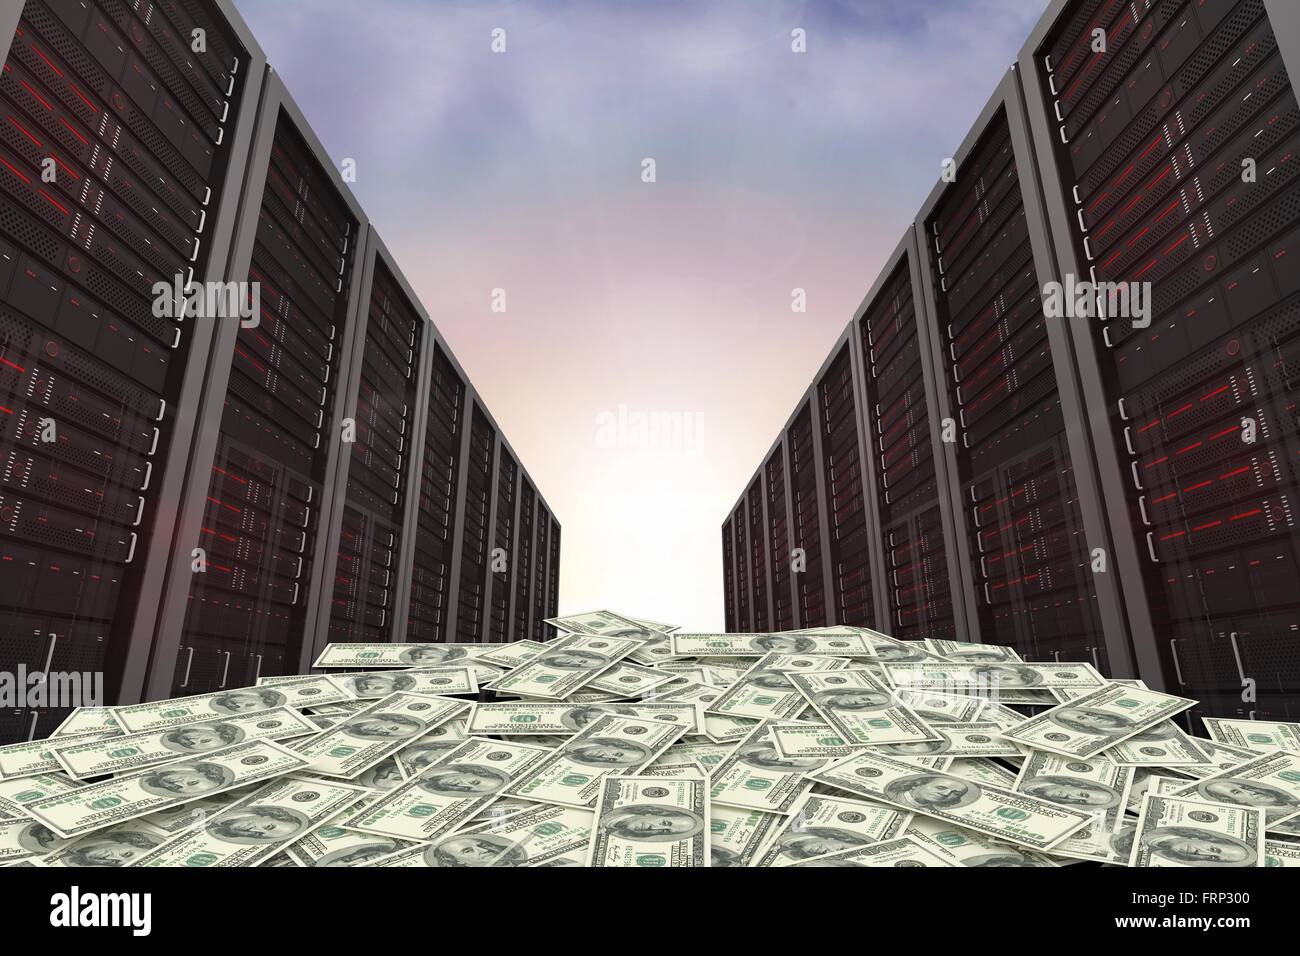 Dollars and server towers - Stock Image